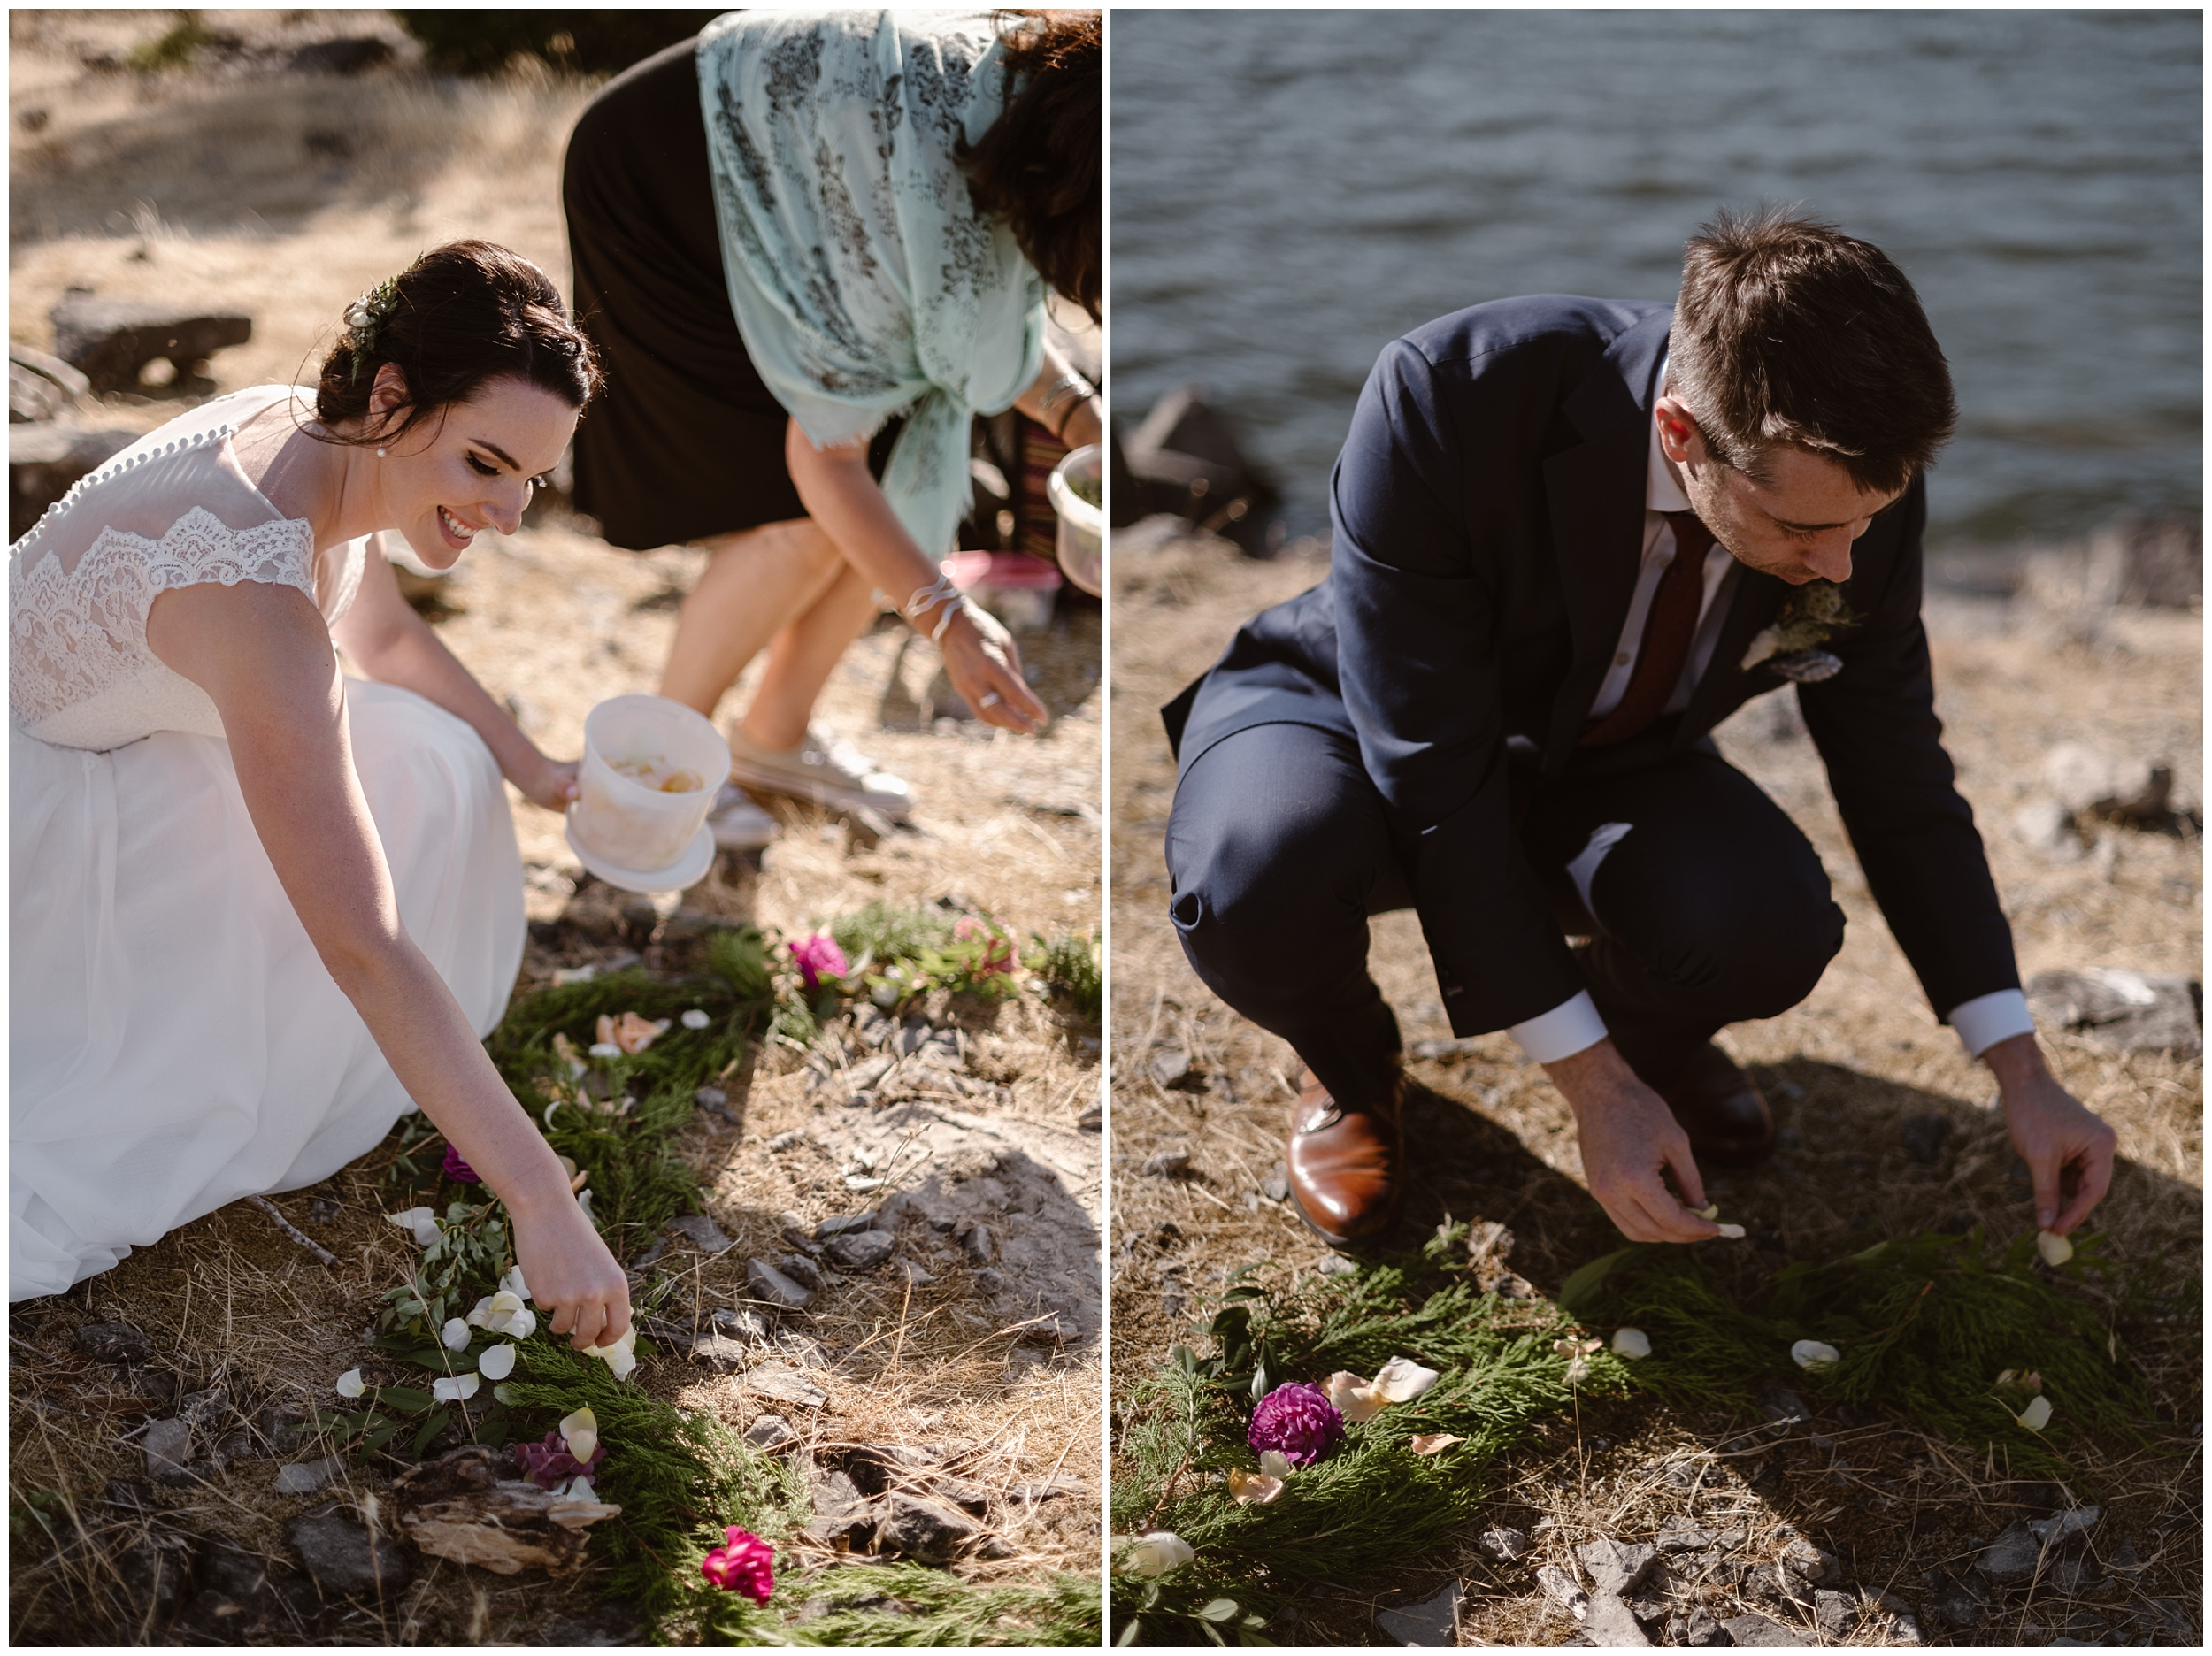 In these side-by-side elopement pictures, Lauryn and David delicately place flowers in a circle at their feet—one of their unique eloping ideas was to get married while standing within this floral circle that they'd help construct during their elopement ceremony.